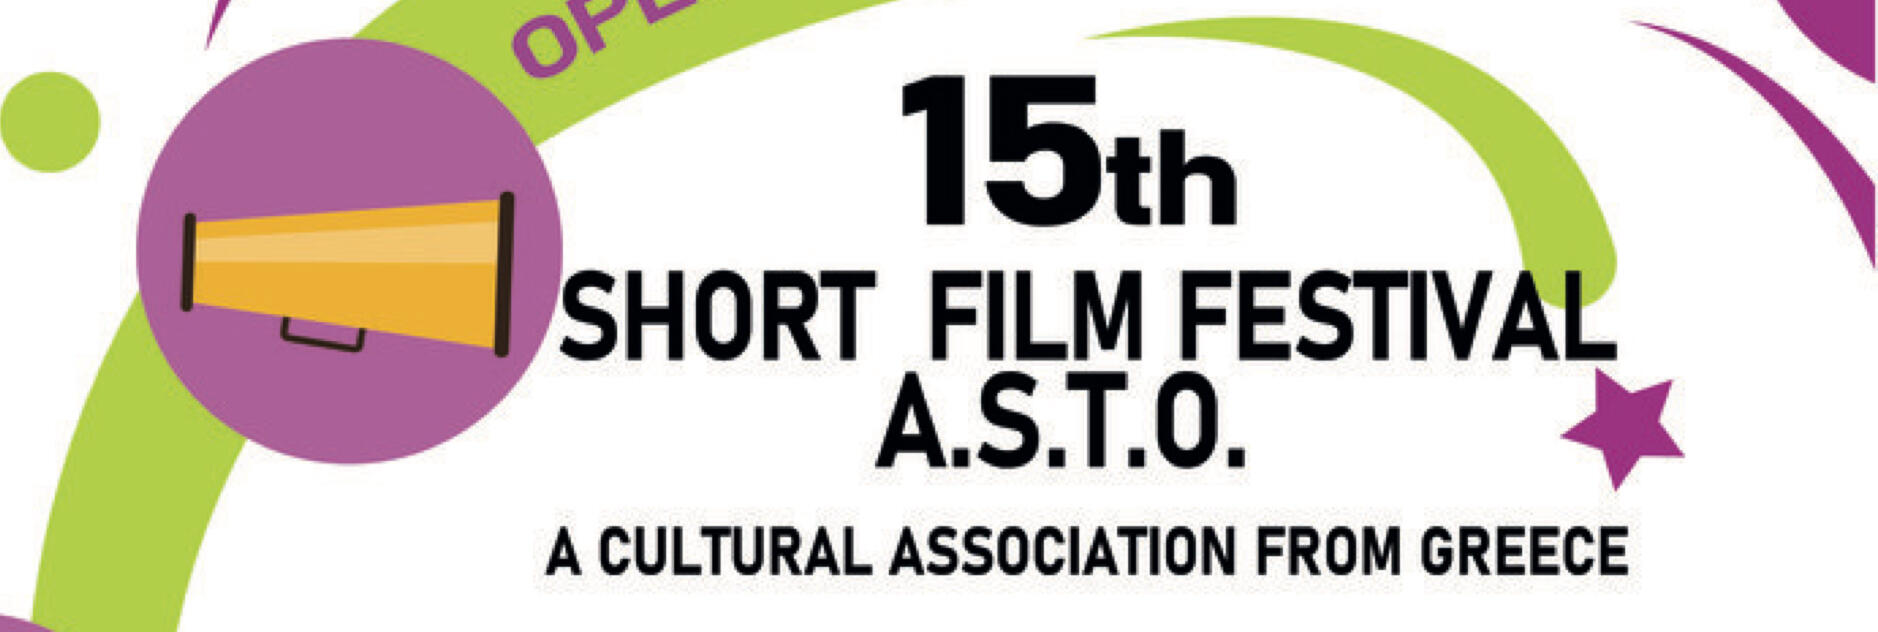 15th International Asto Film Festival